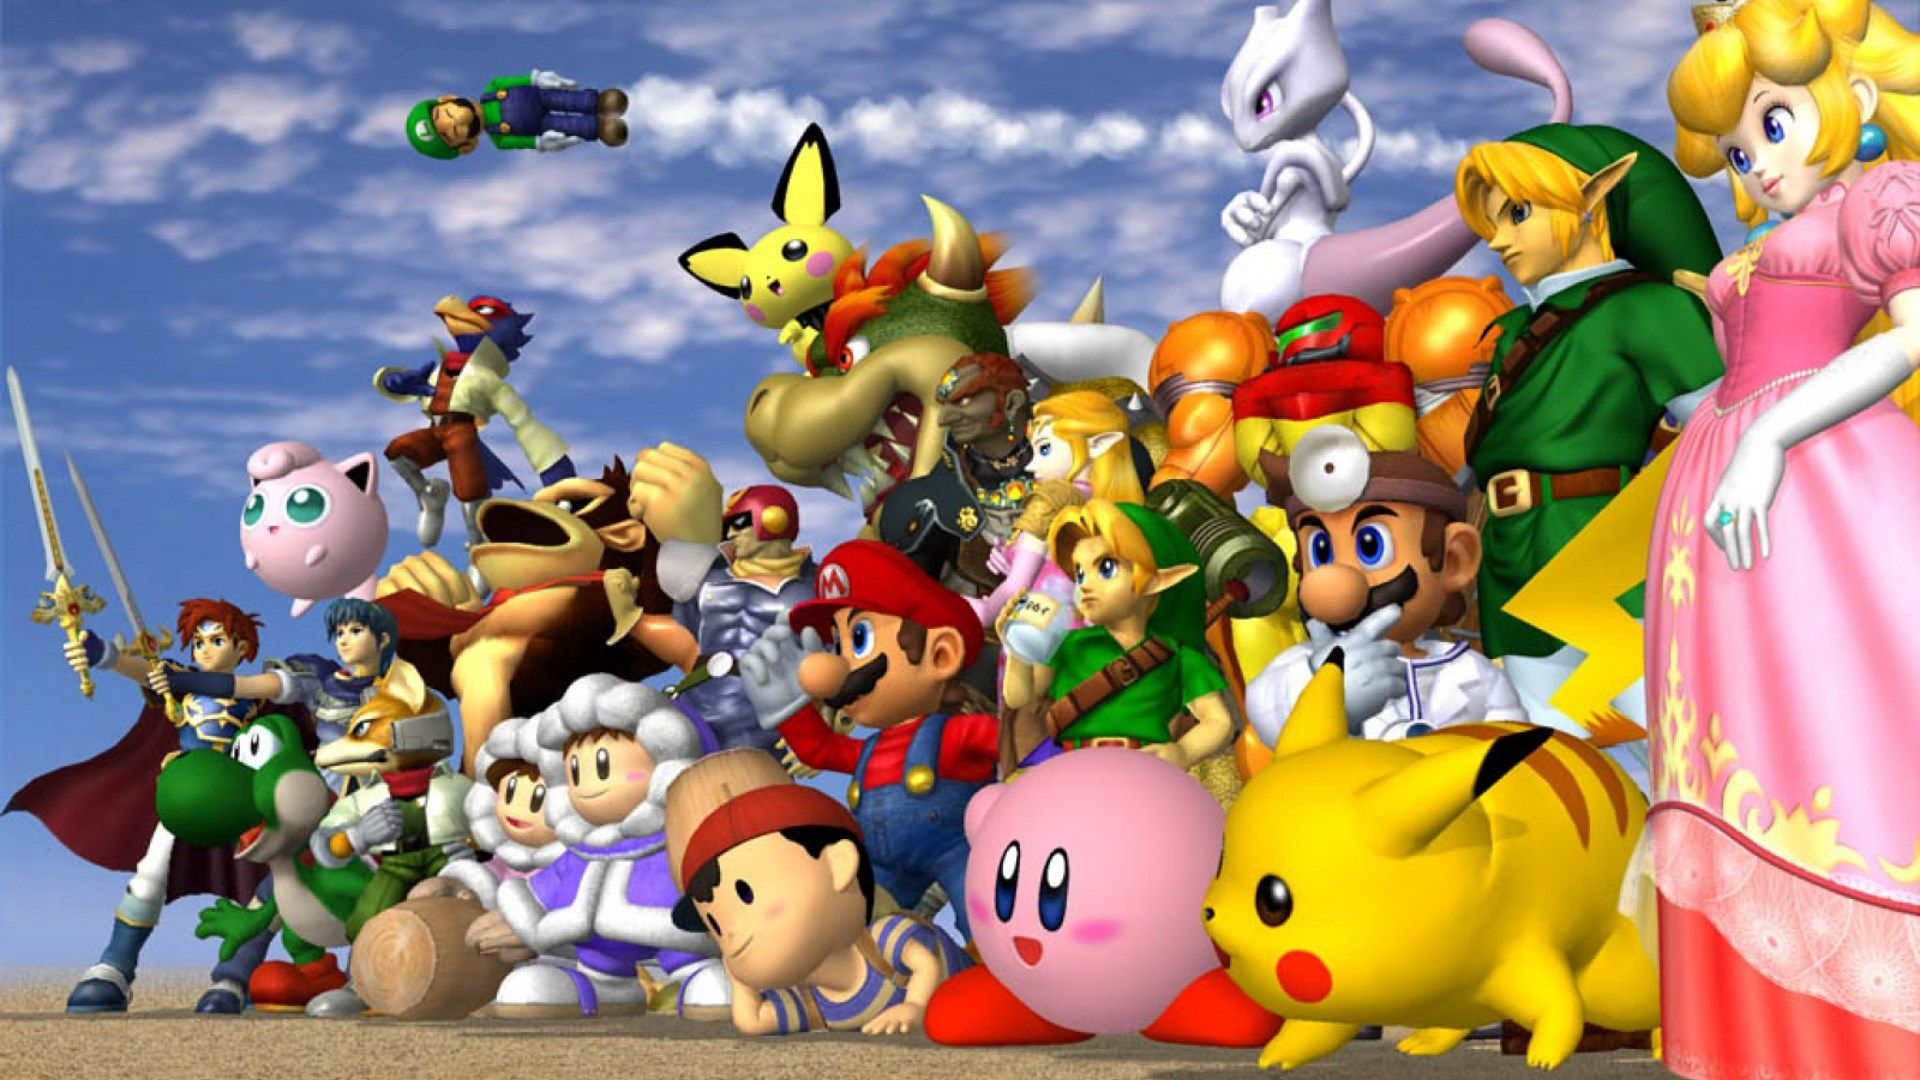 1920x1080 Background In High Quality Super Smash Bros With